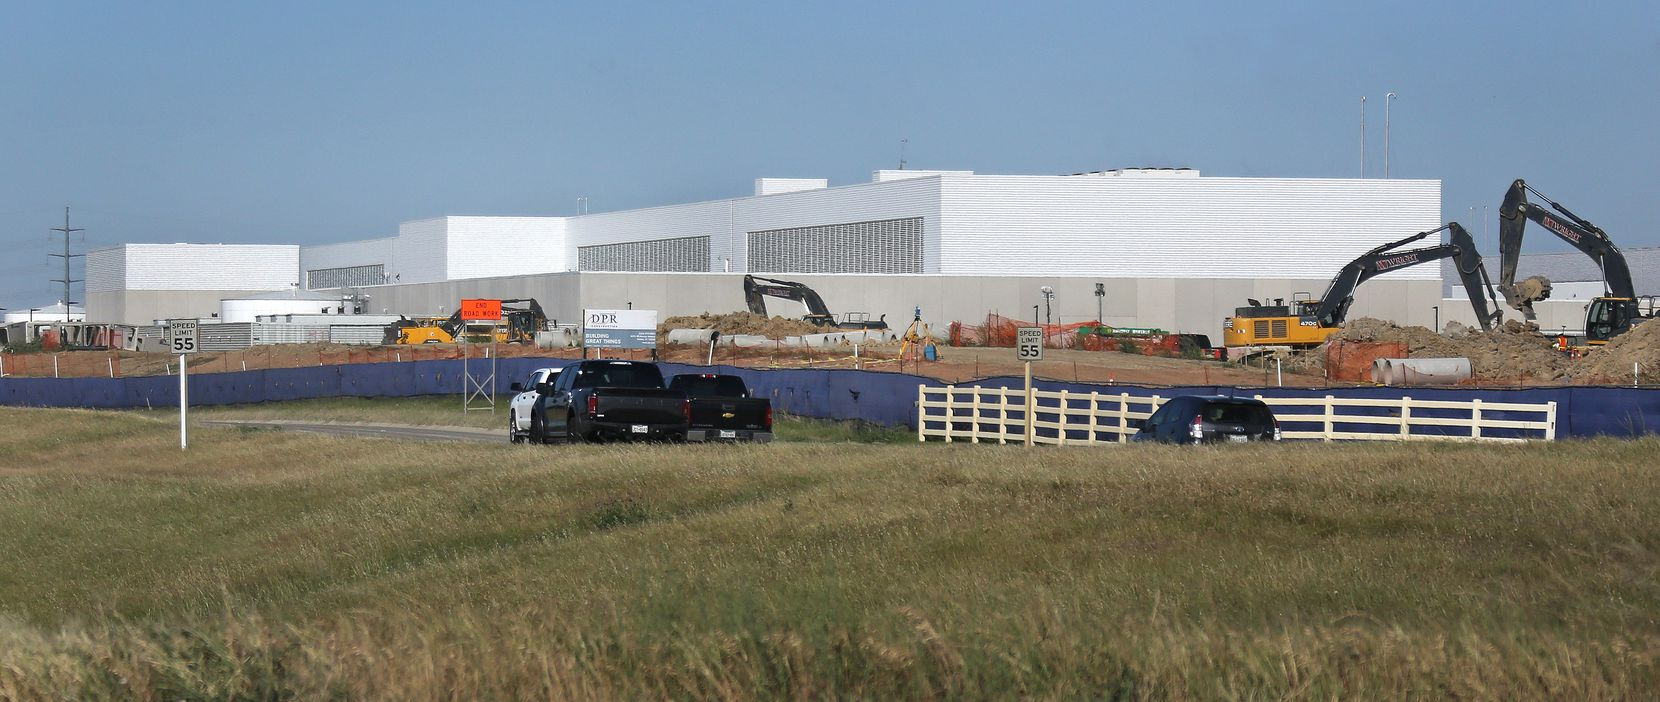 Construction has started on the third phase of Facebook's Fort Worth Data Center, as seen from Highway 170.